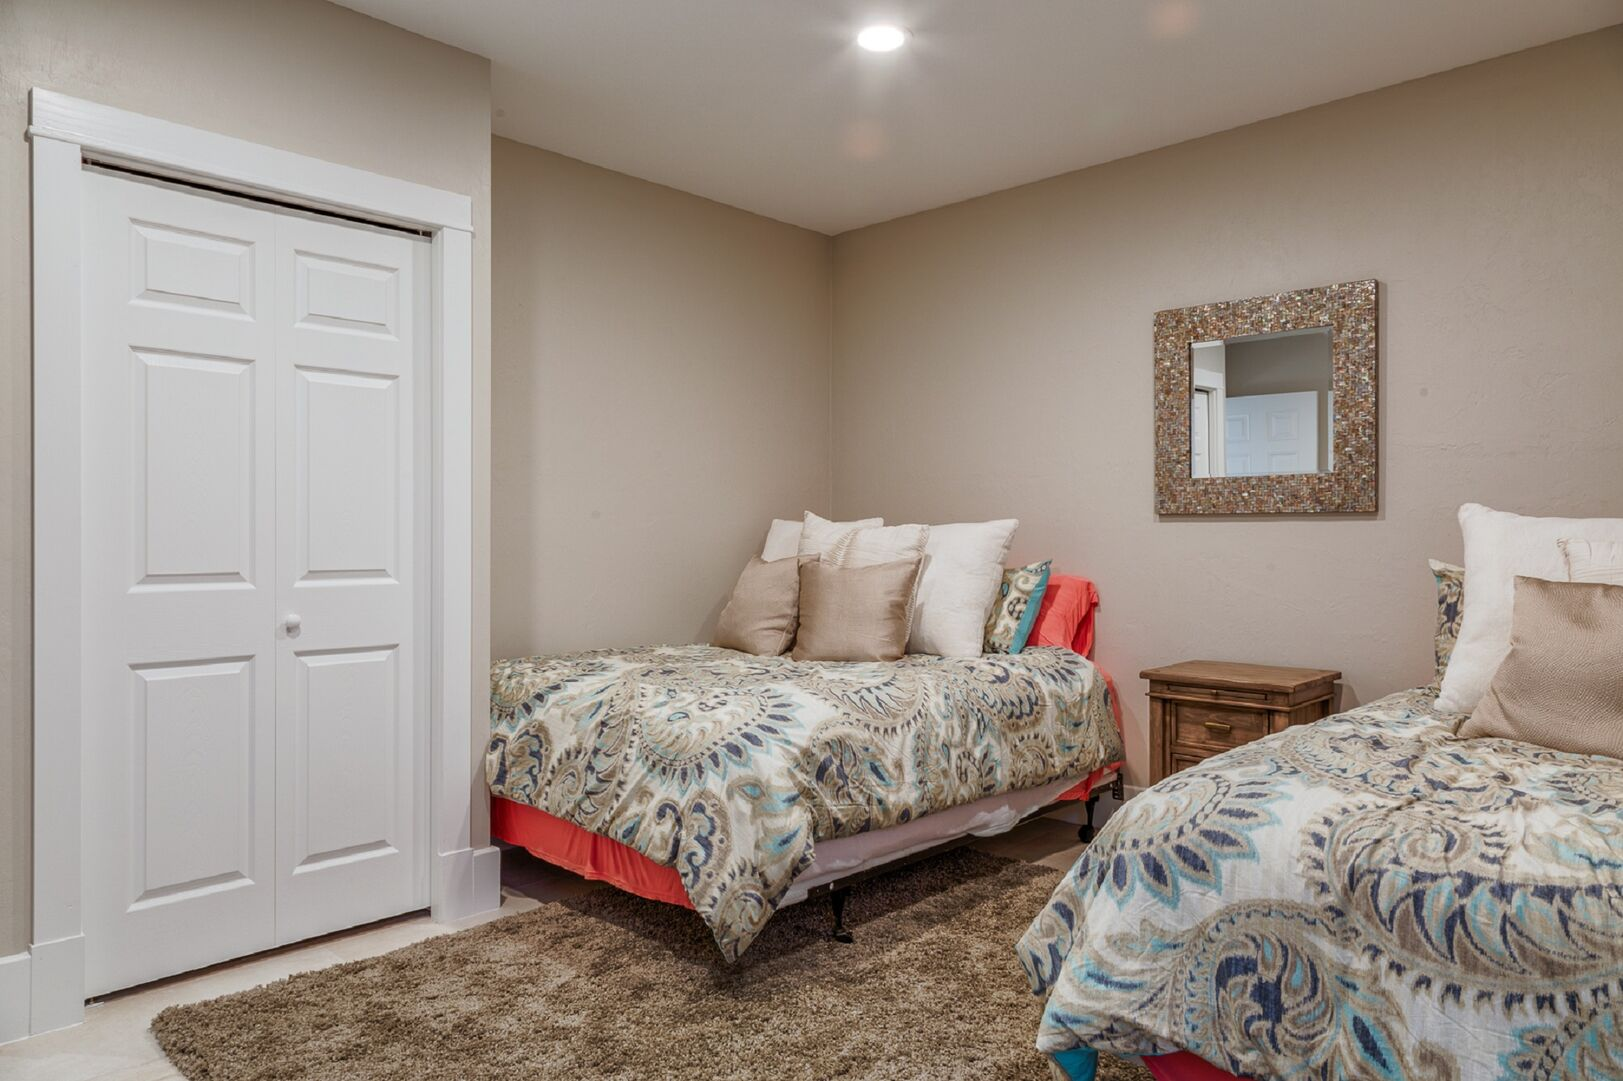 Two large beds side by side, with a nightstand and mirror between them.